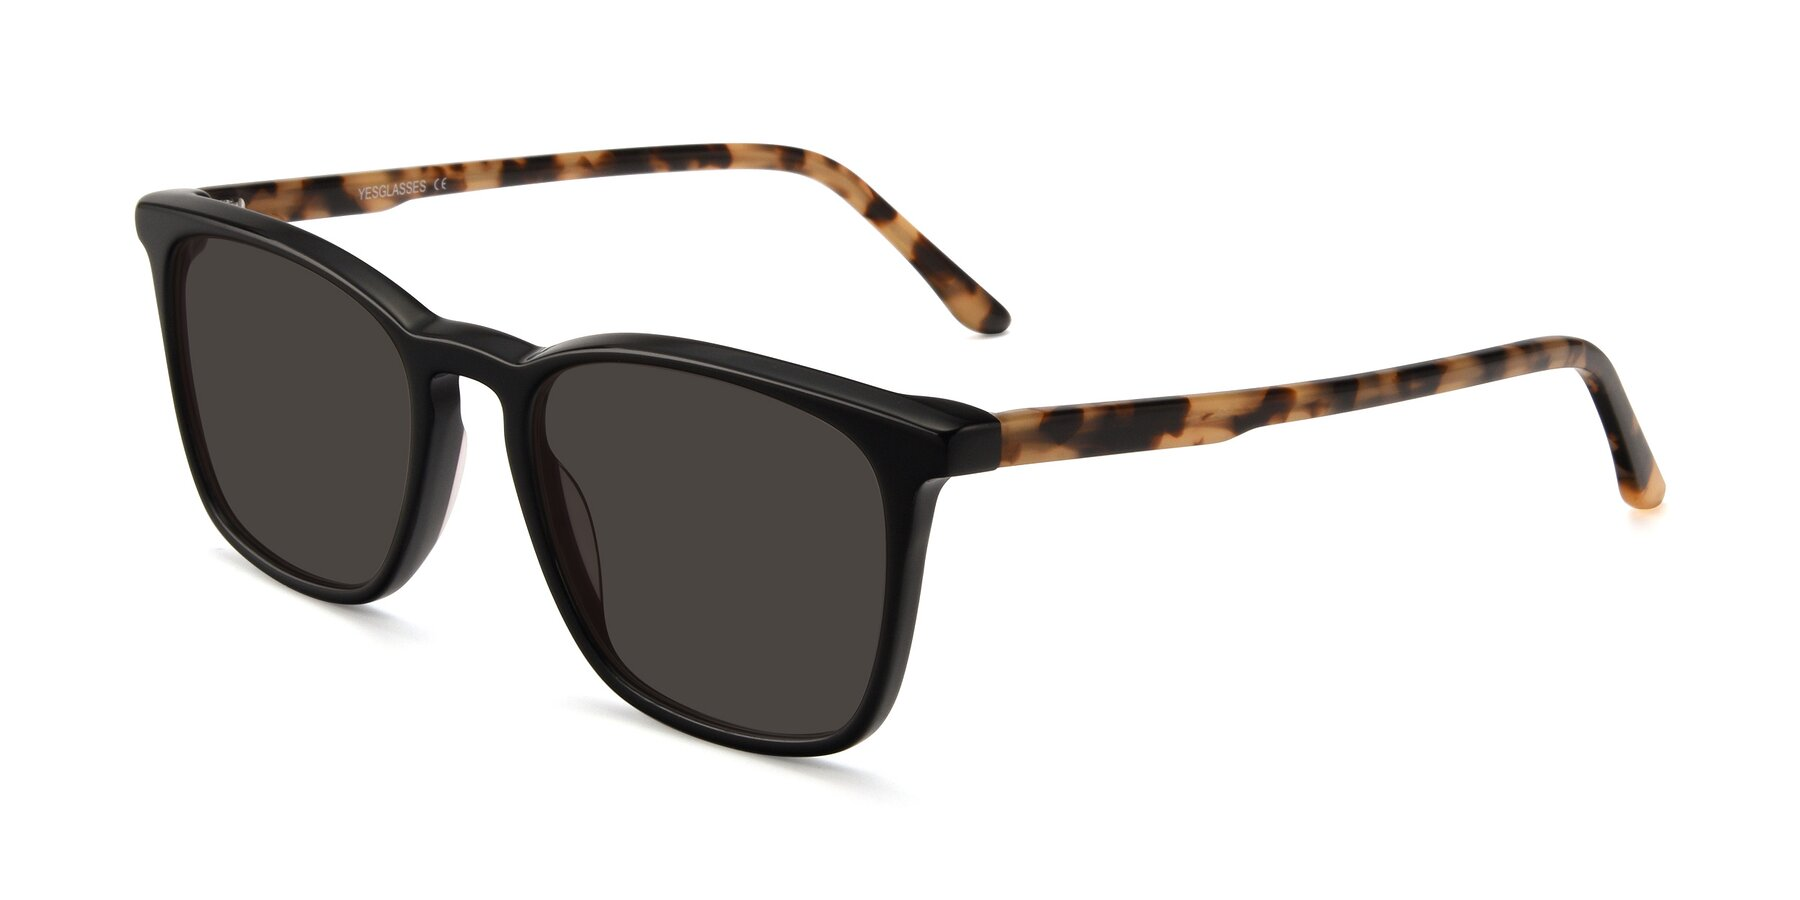 Angle of Vigor in Black-Tortoise with Gray Tinted Lenses